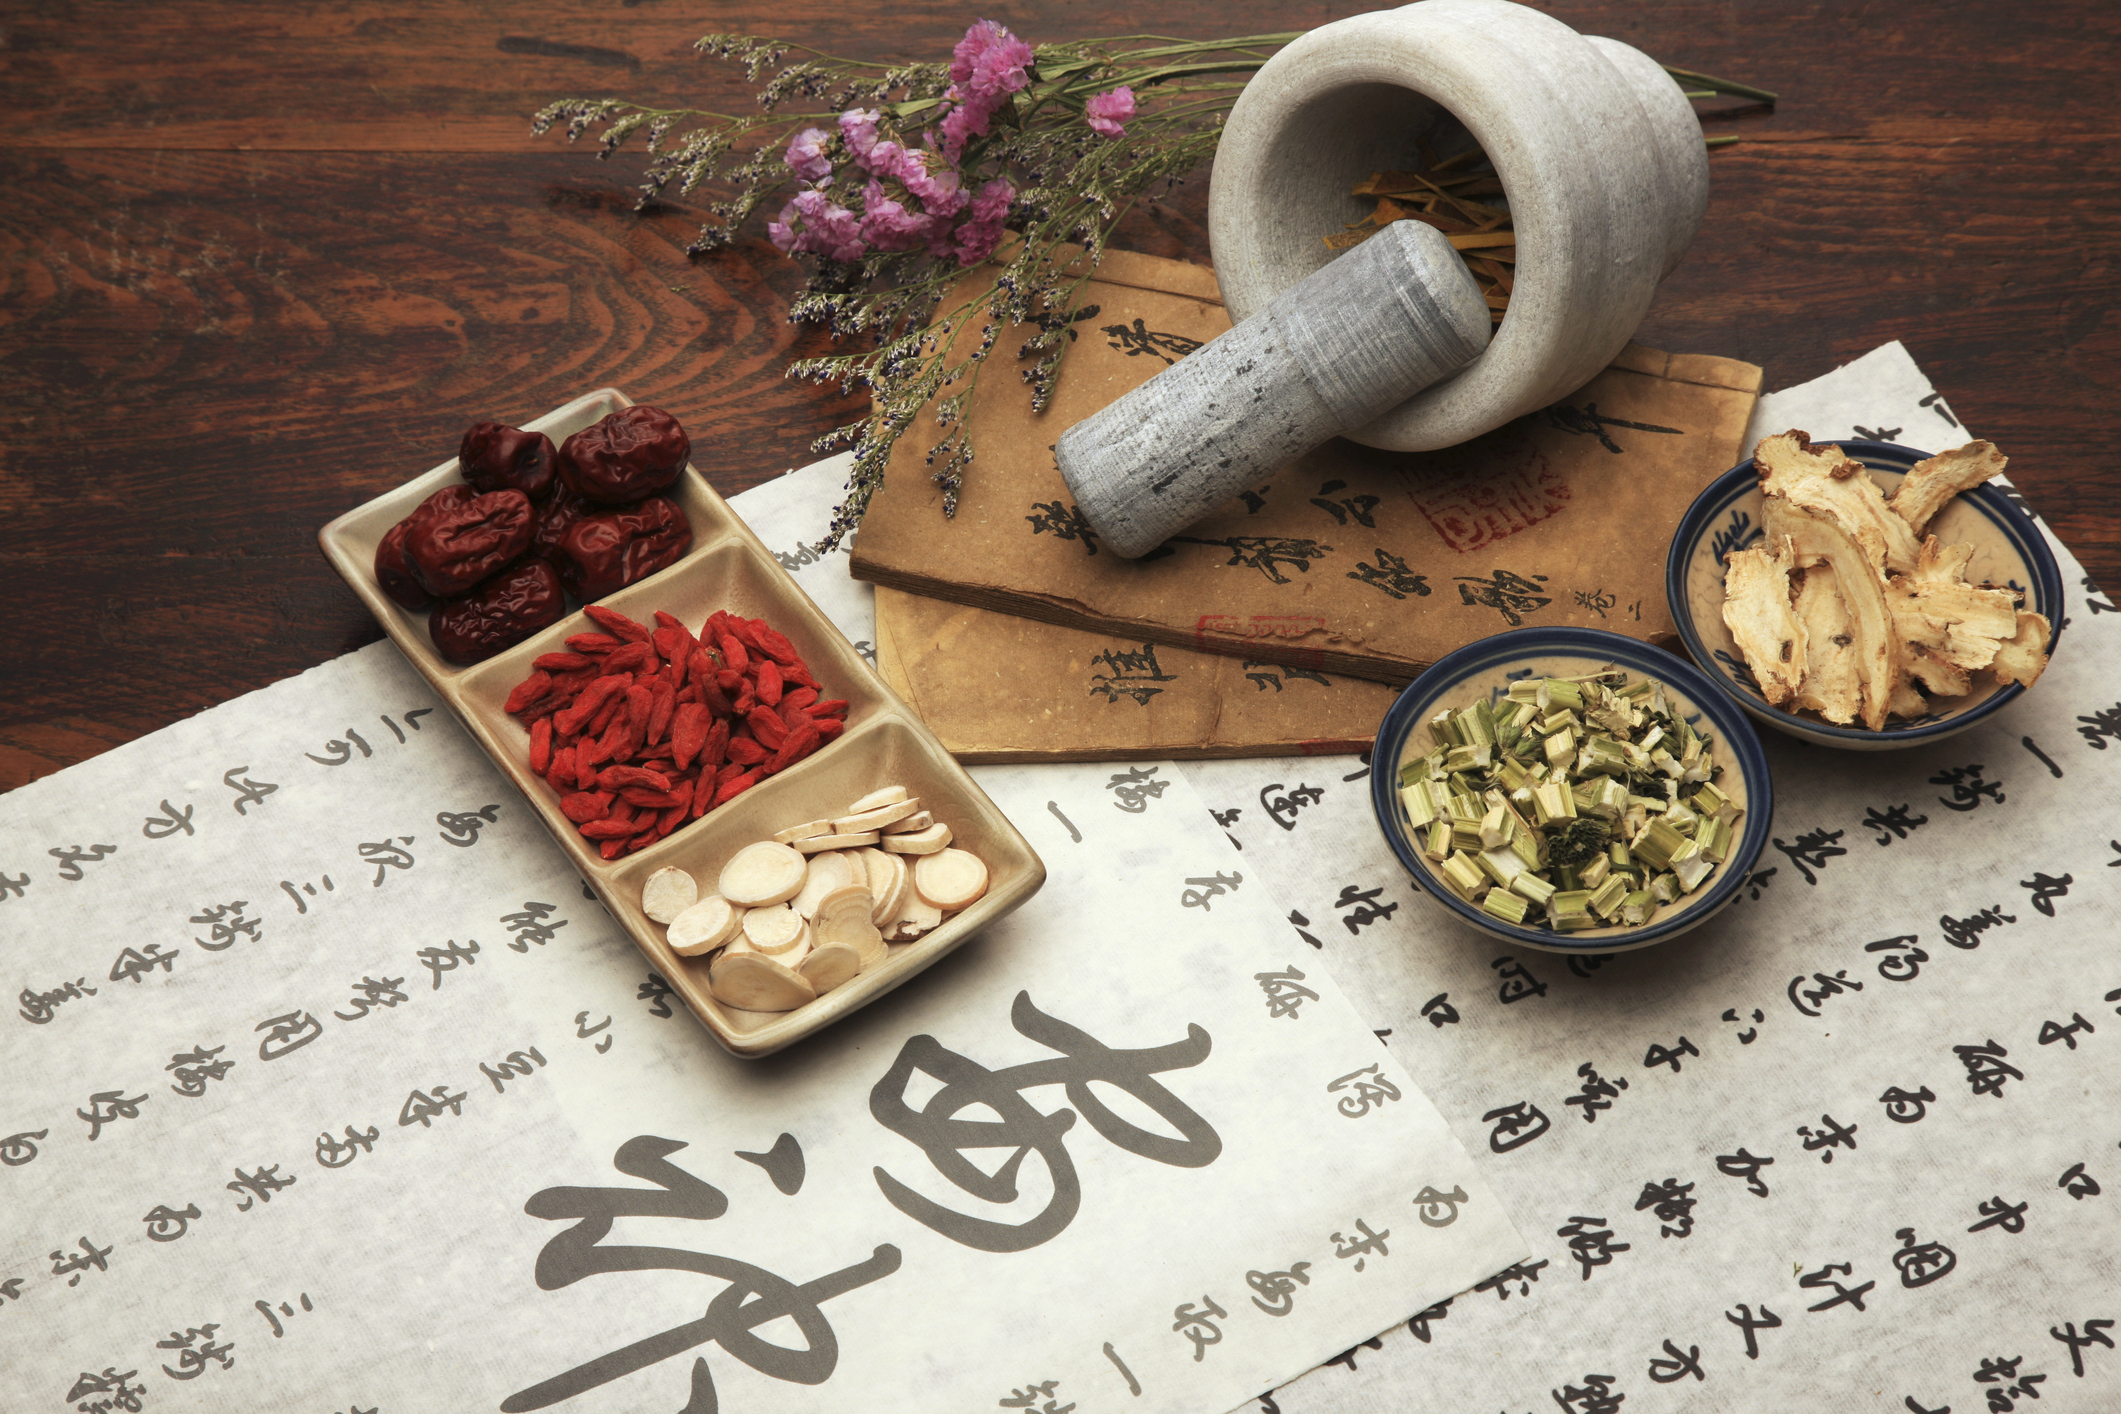 A set of Chinese herbal medicine and tea set